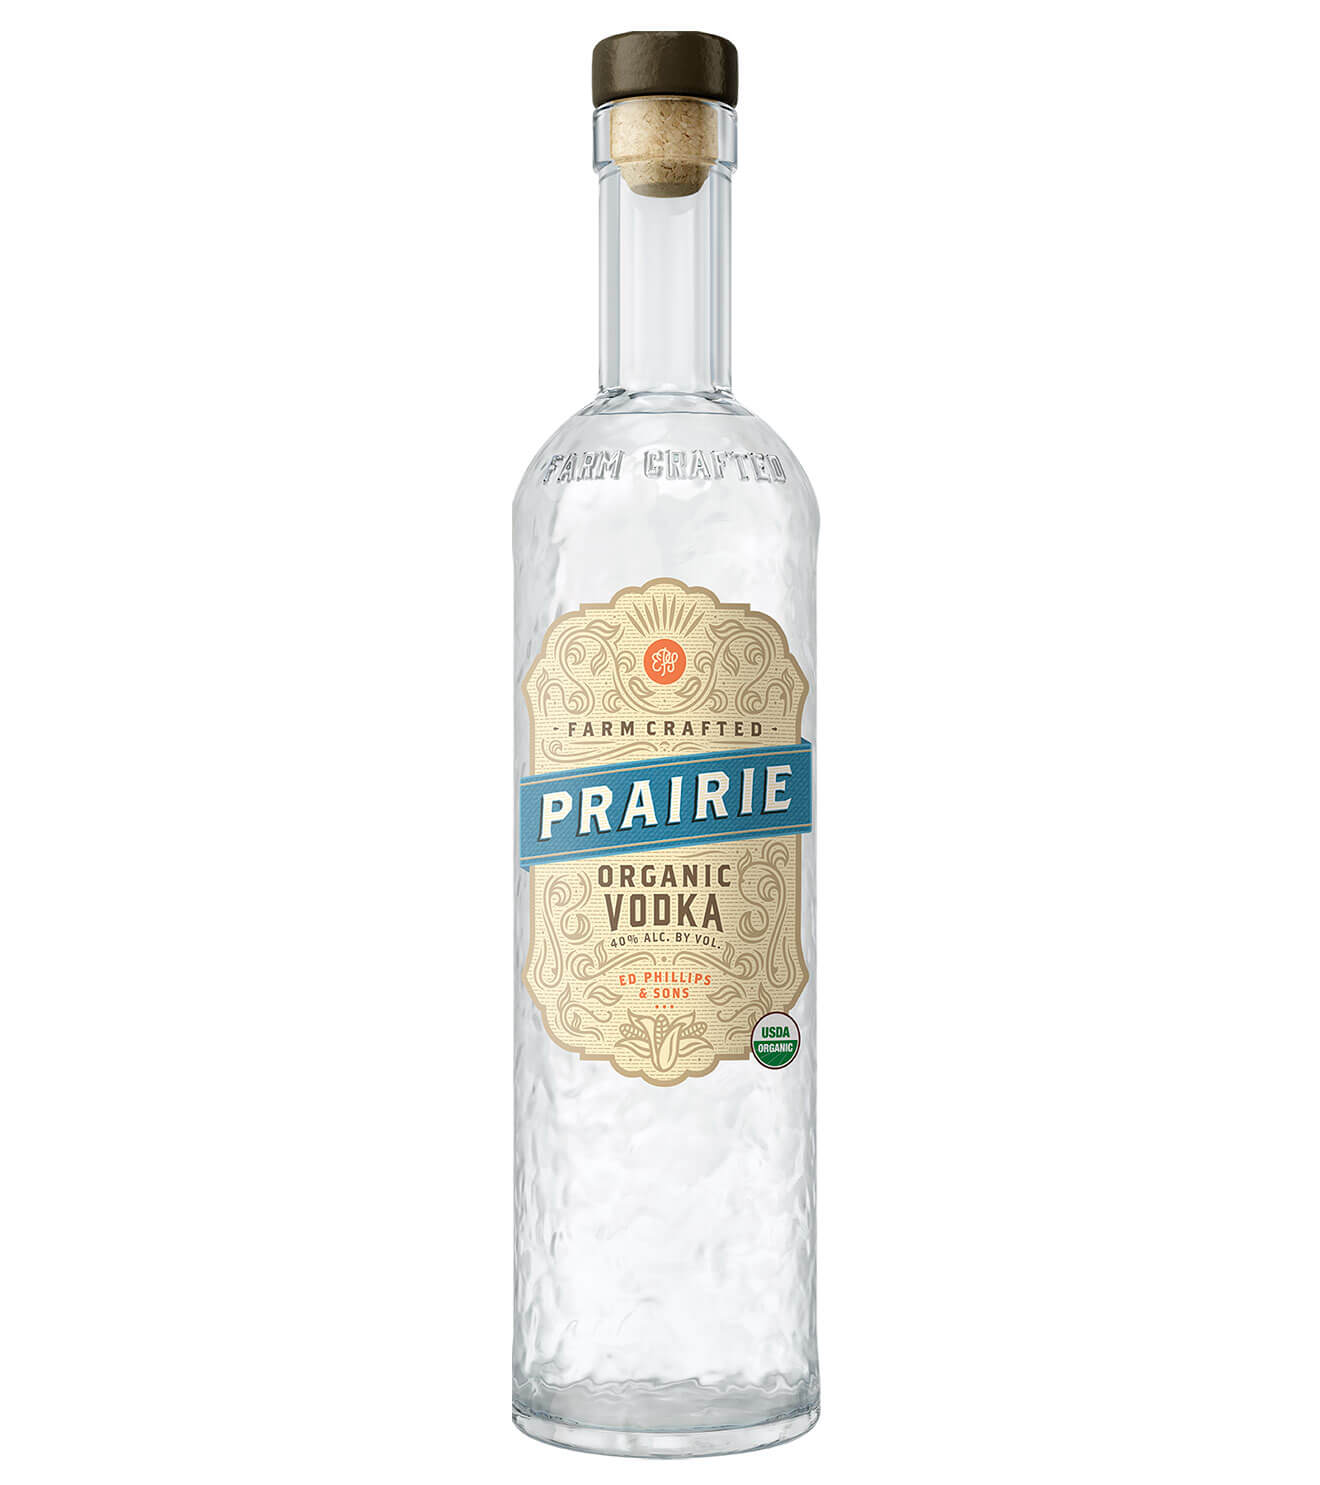 Prairie Organic Vodka, bottle on white